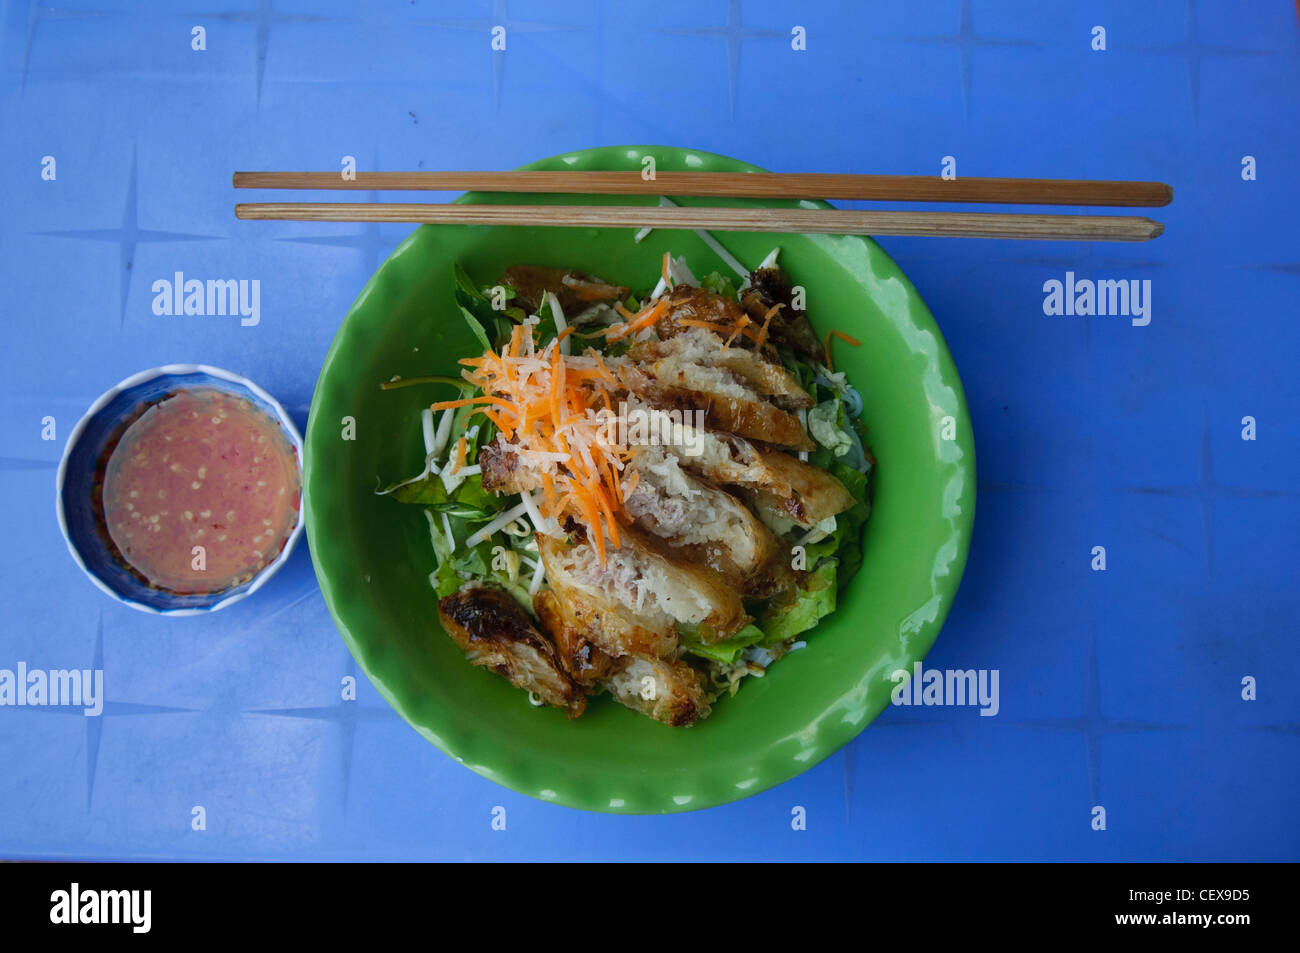 Stock Photo - Vietnamese bun cha (grilled pork balls with noodles) on Phu Quoc Island in Vietnam